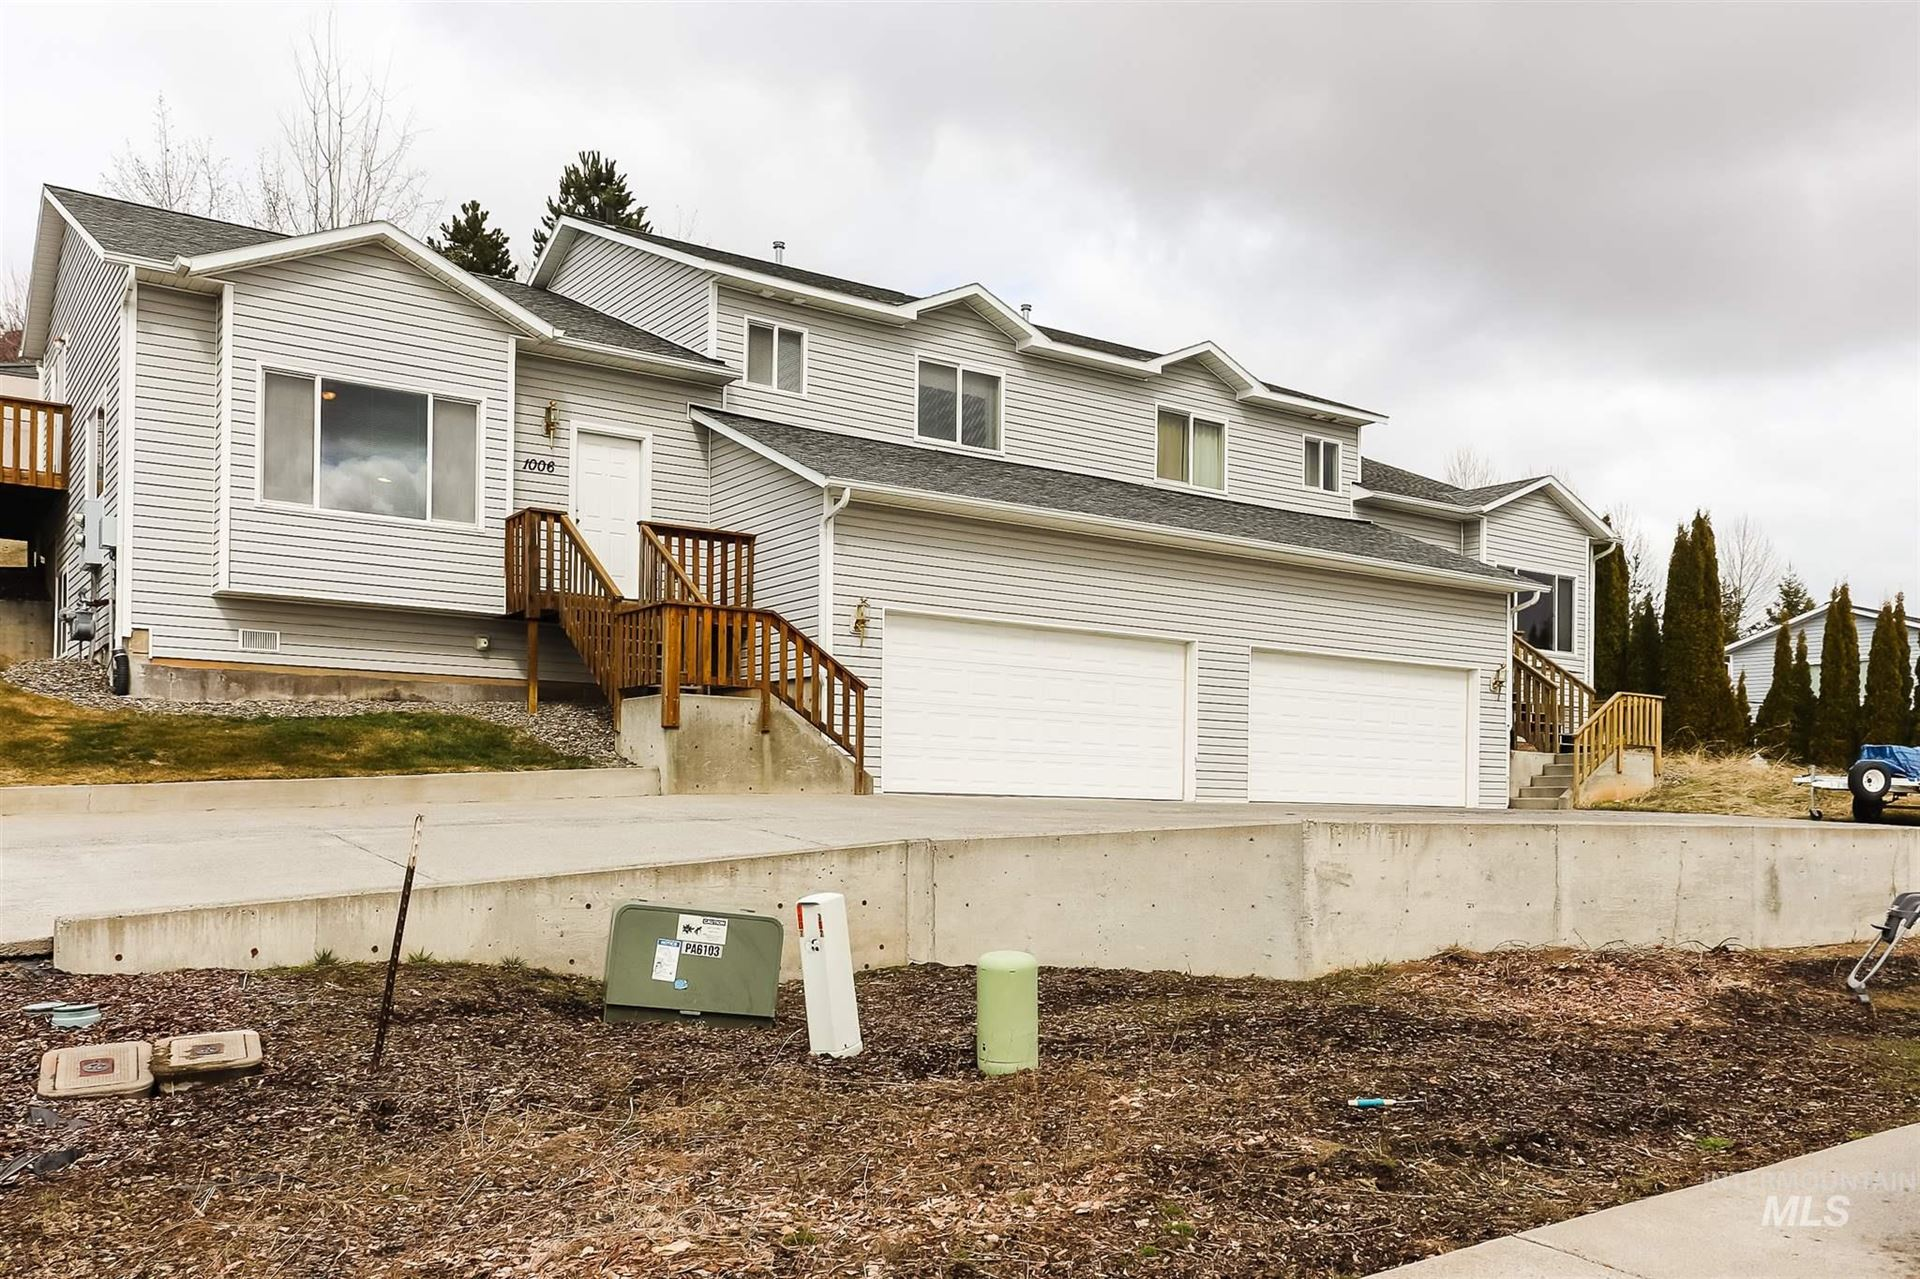 Photo of 1008 N Jefferson, Moscow, ID 83843 (MLS # 98797503)